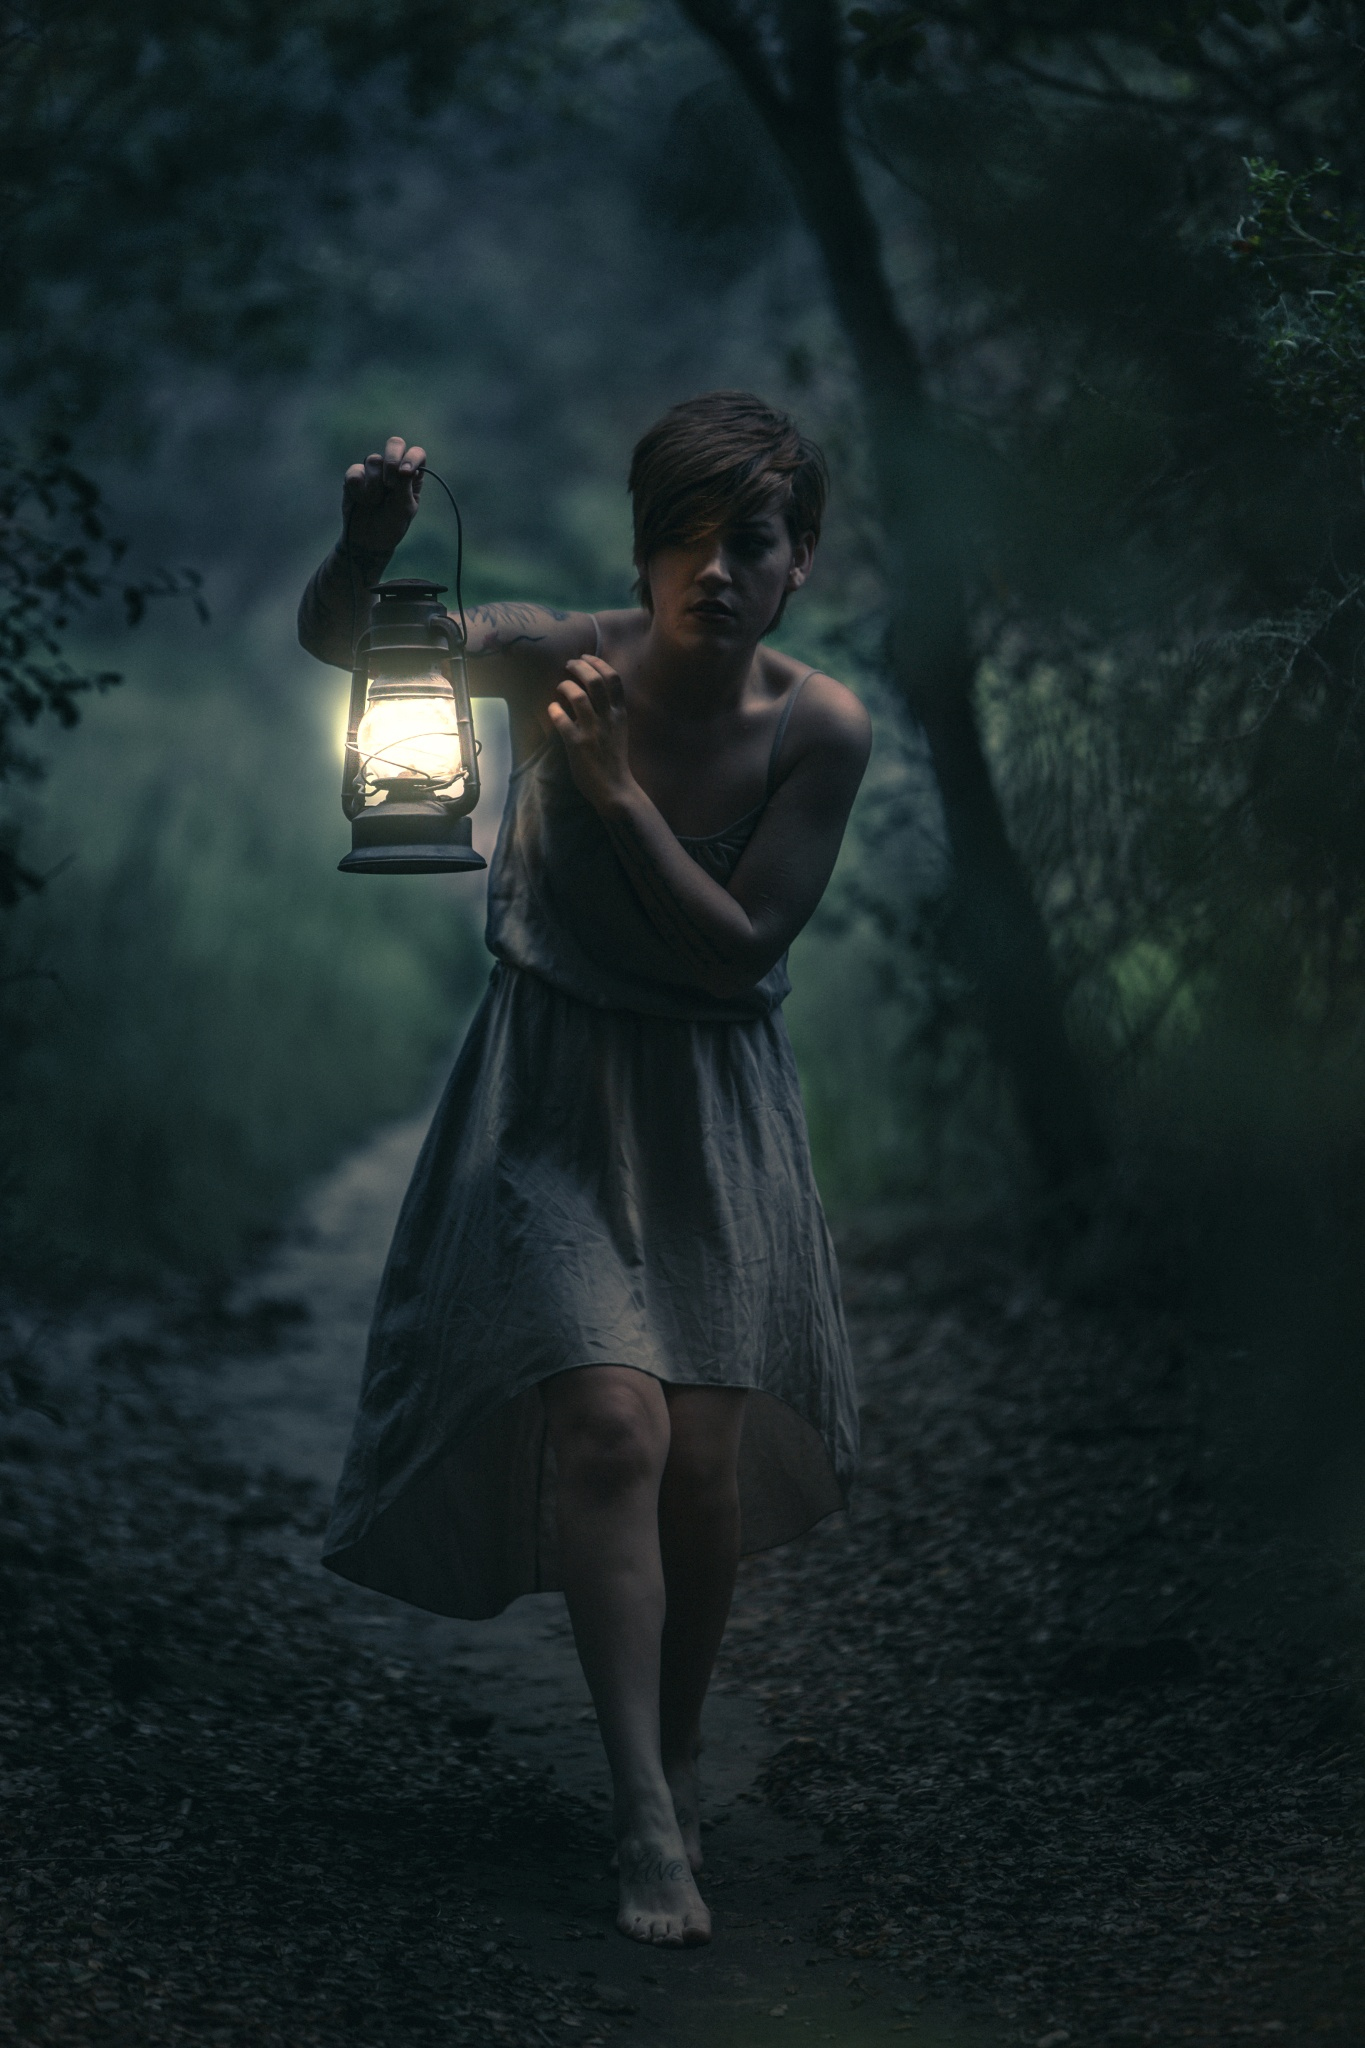 Lost Girl In Dark Forest svg #1, Download drawings